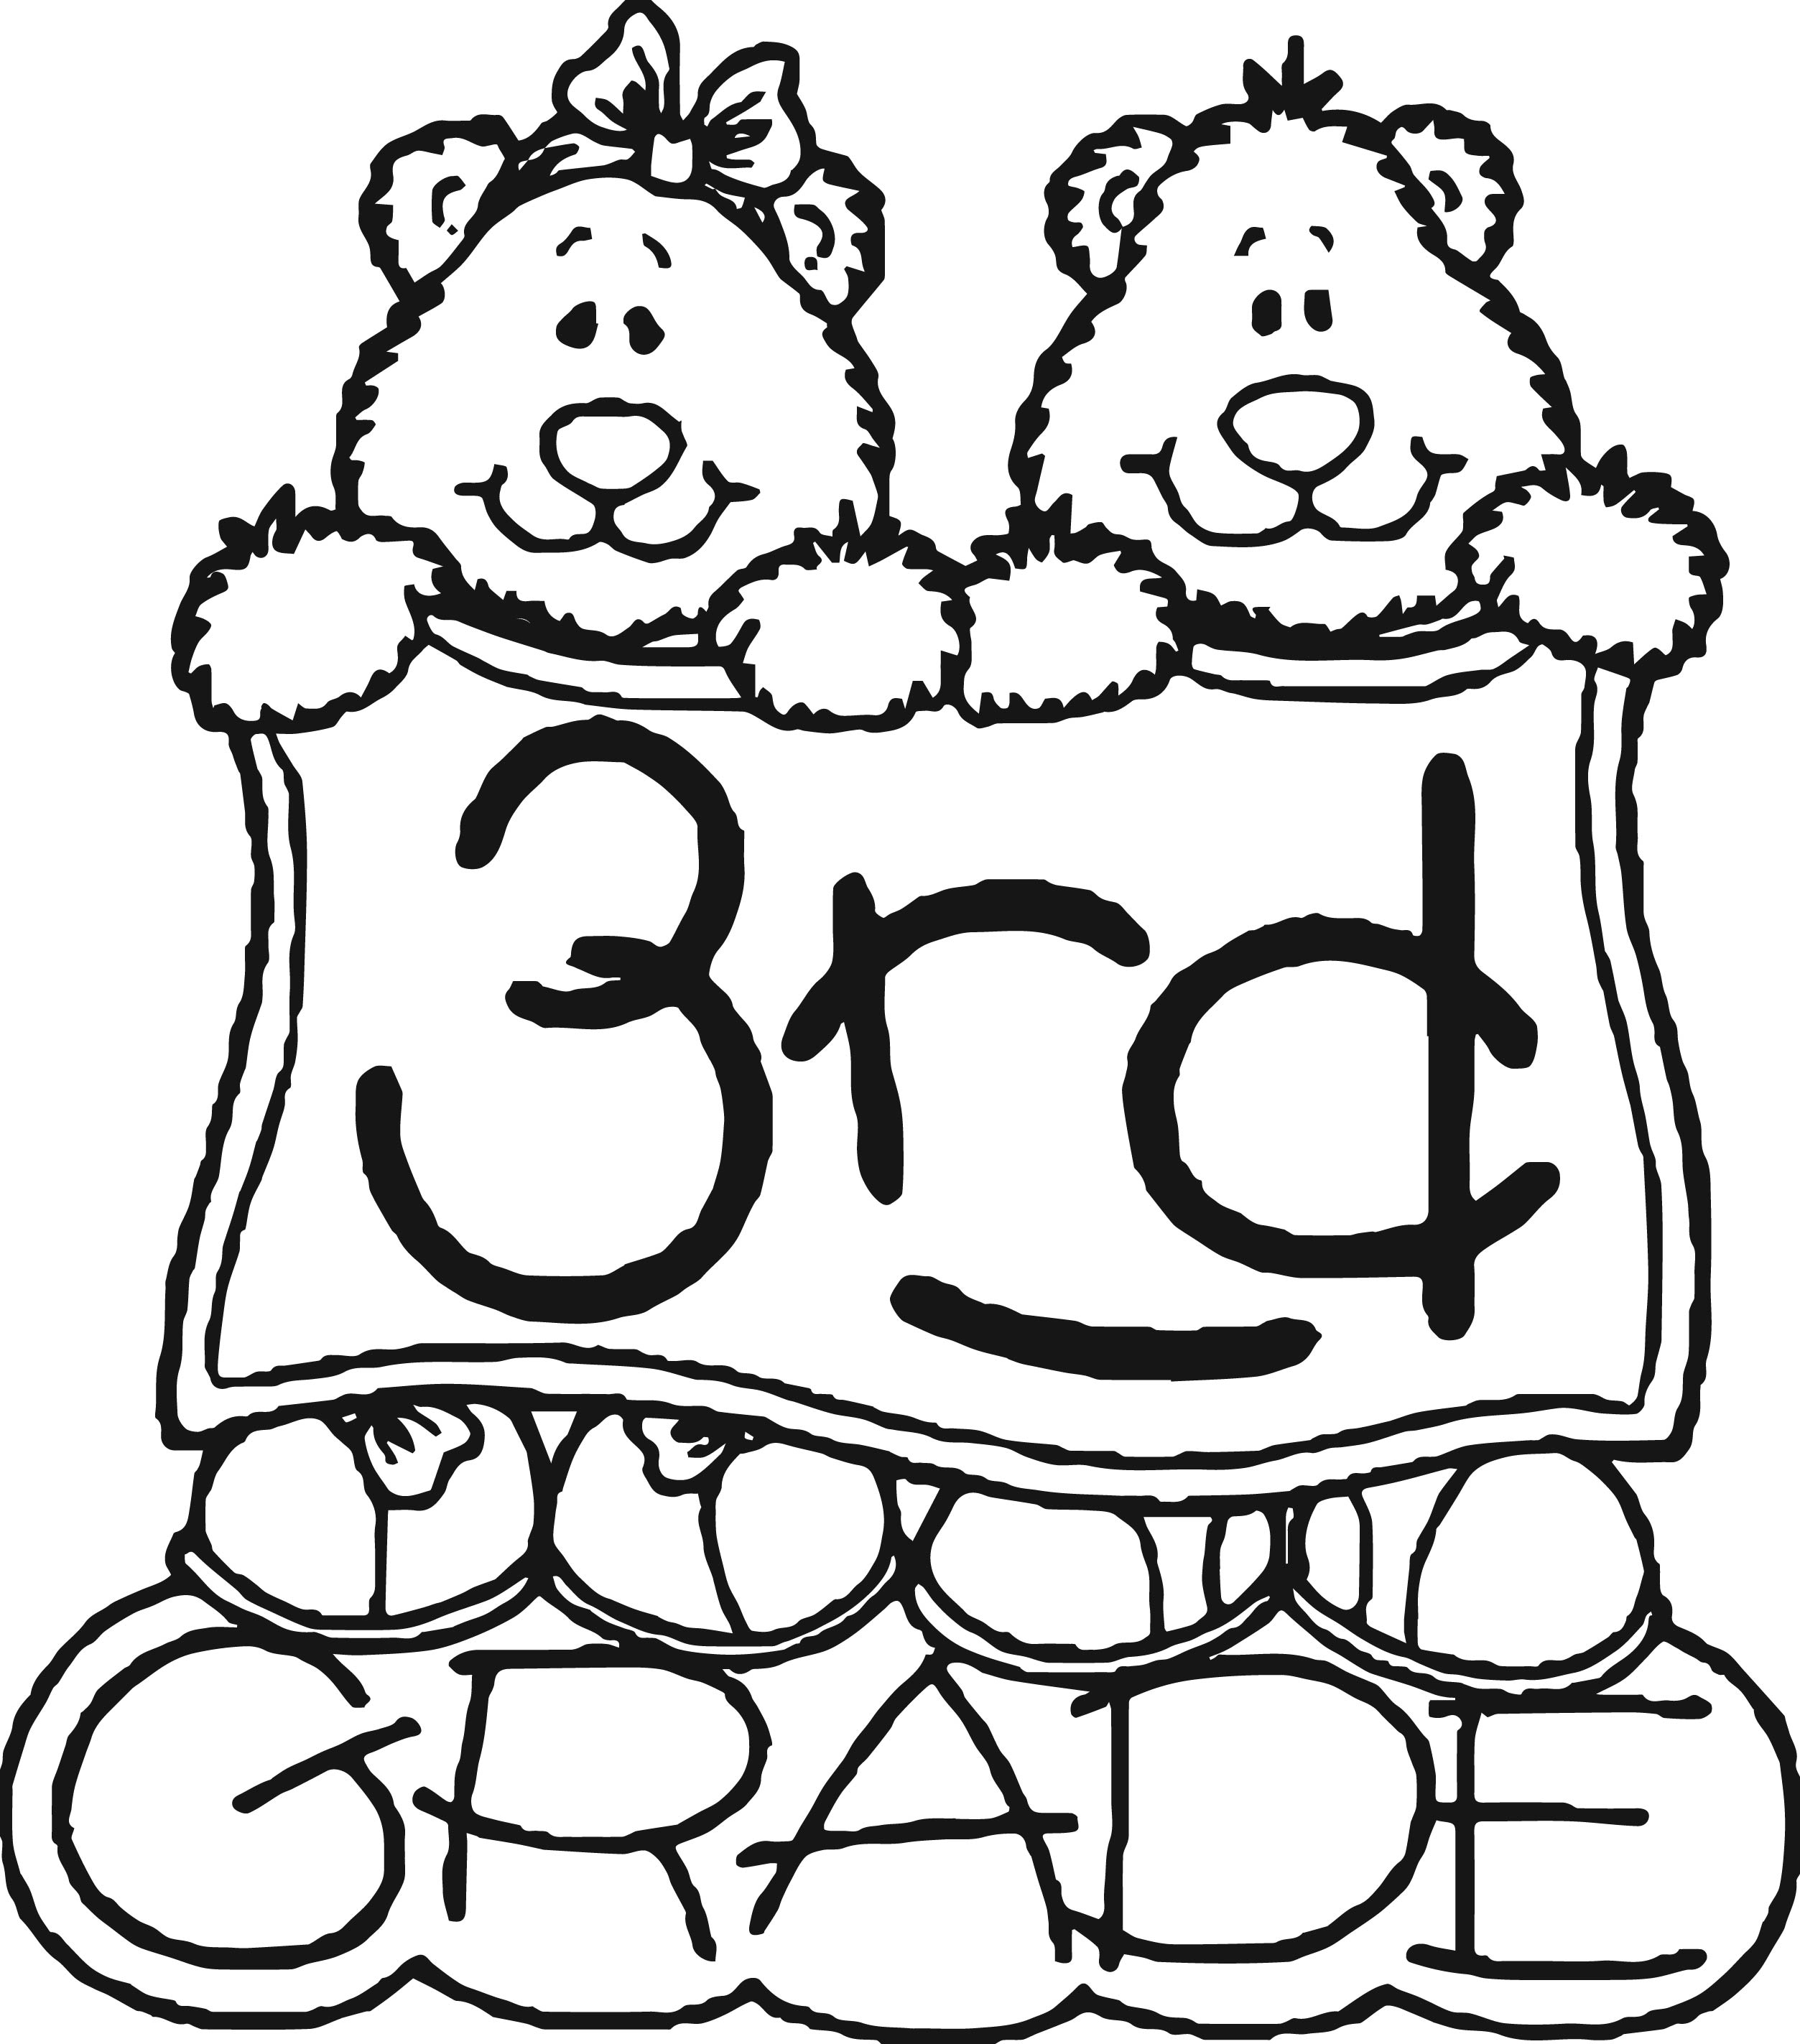 coloring pages for 3rd graders 3rd grade coloring pages12312 3rd graders coloring for pages